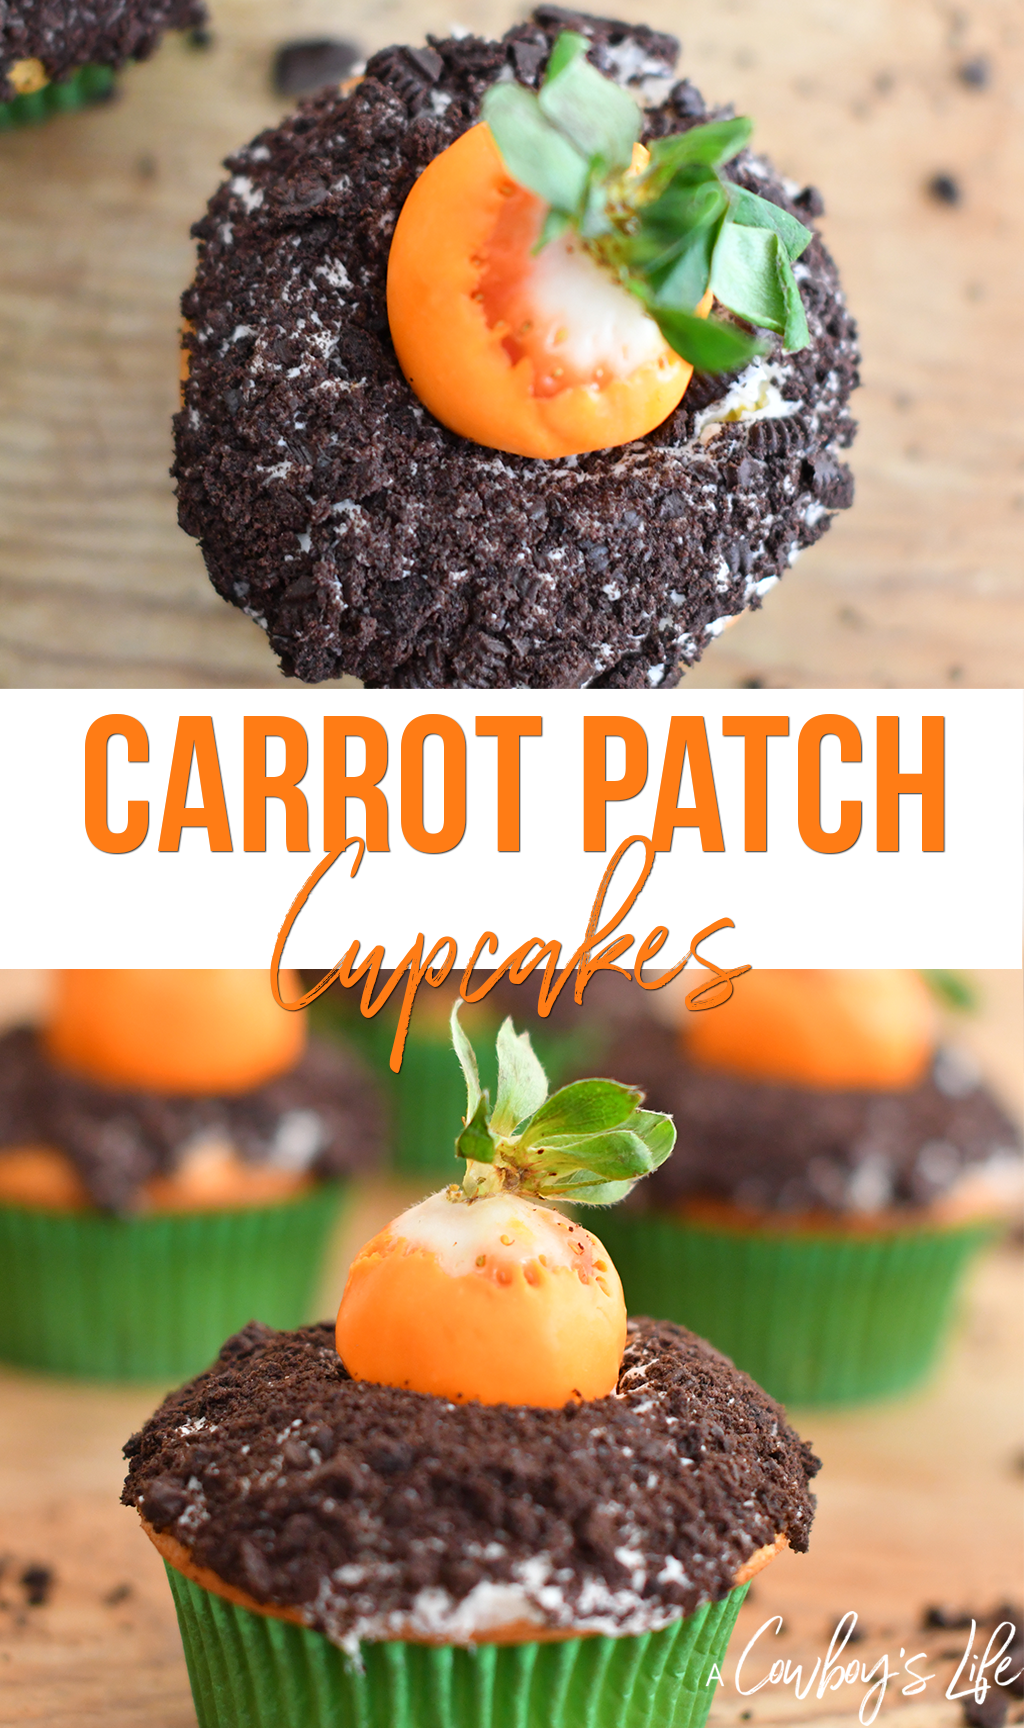 These carrot patch cupcakes are a fun spring dessert! #easter #easterdessert #cupcakes